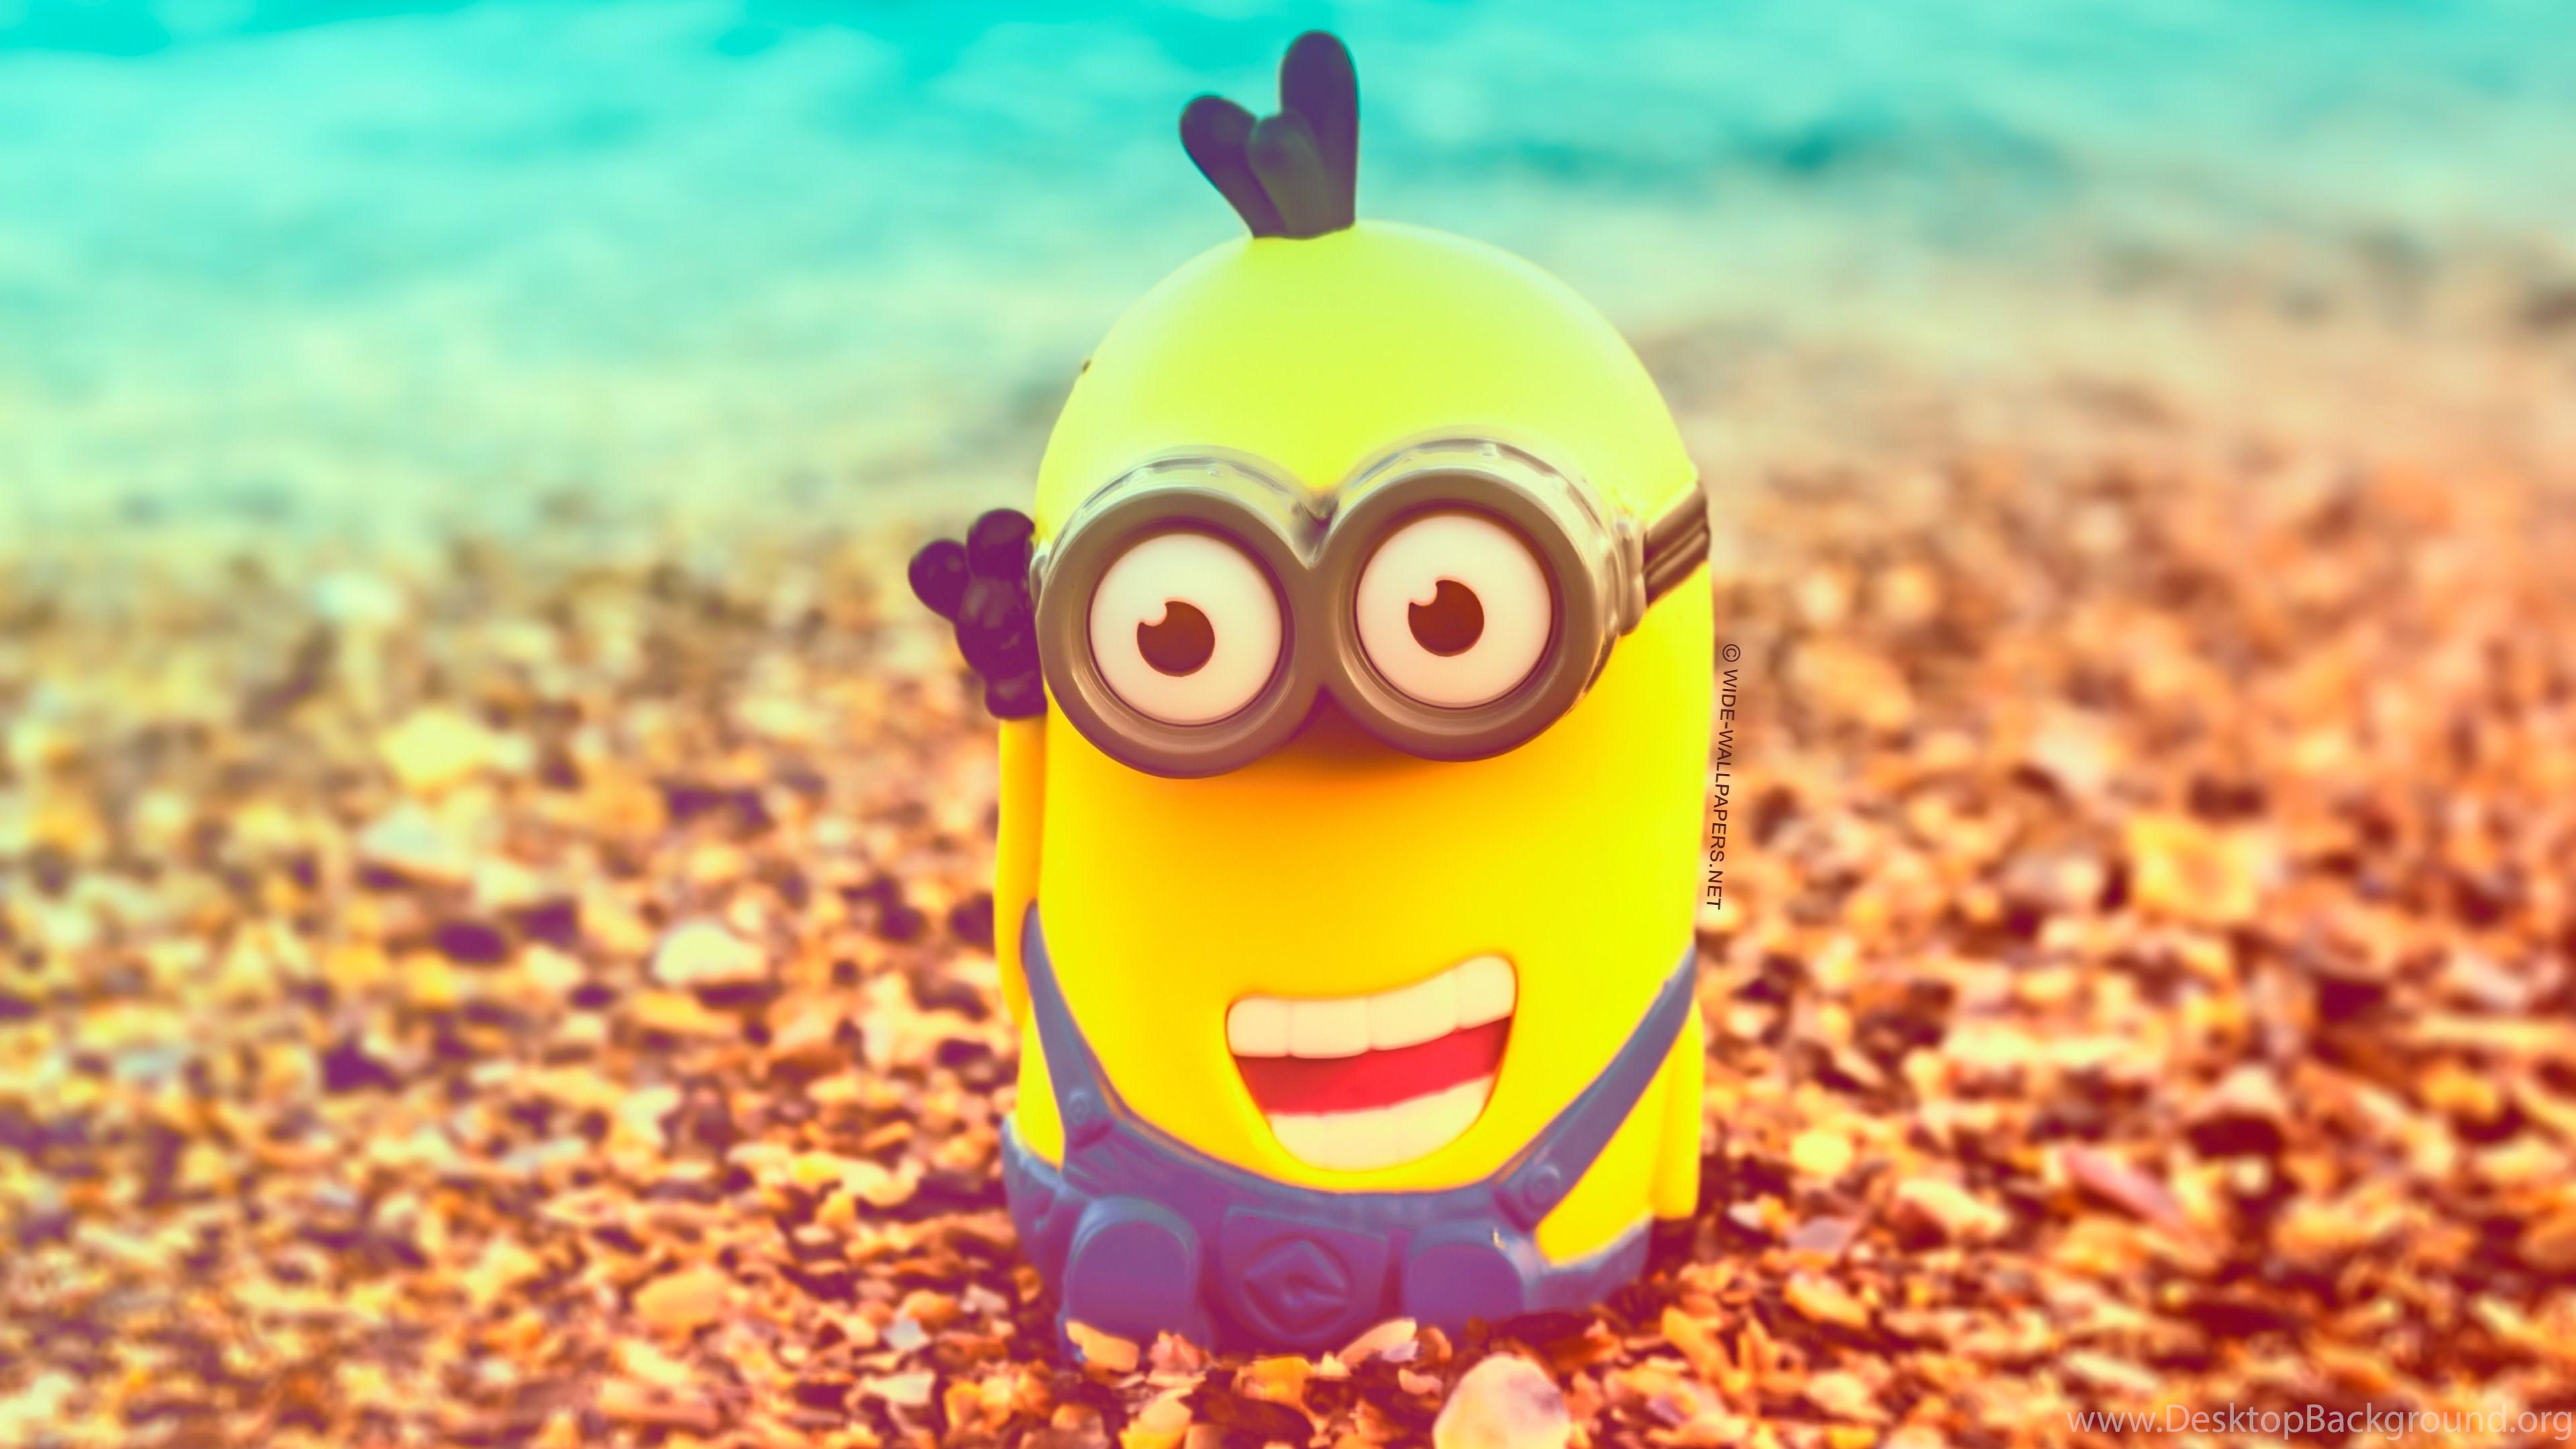 Minions Hd Wallpapers For Android Ultra Hd Minion Hd